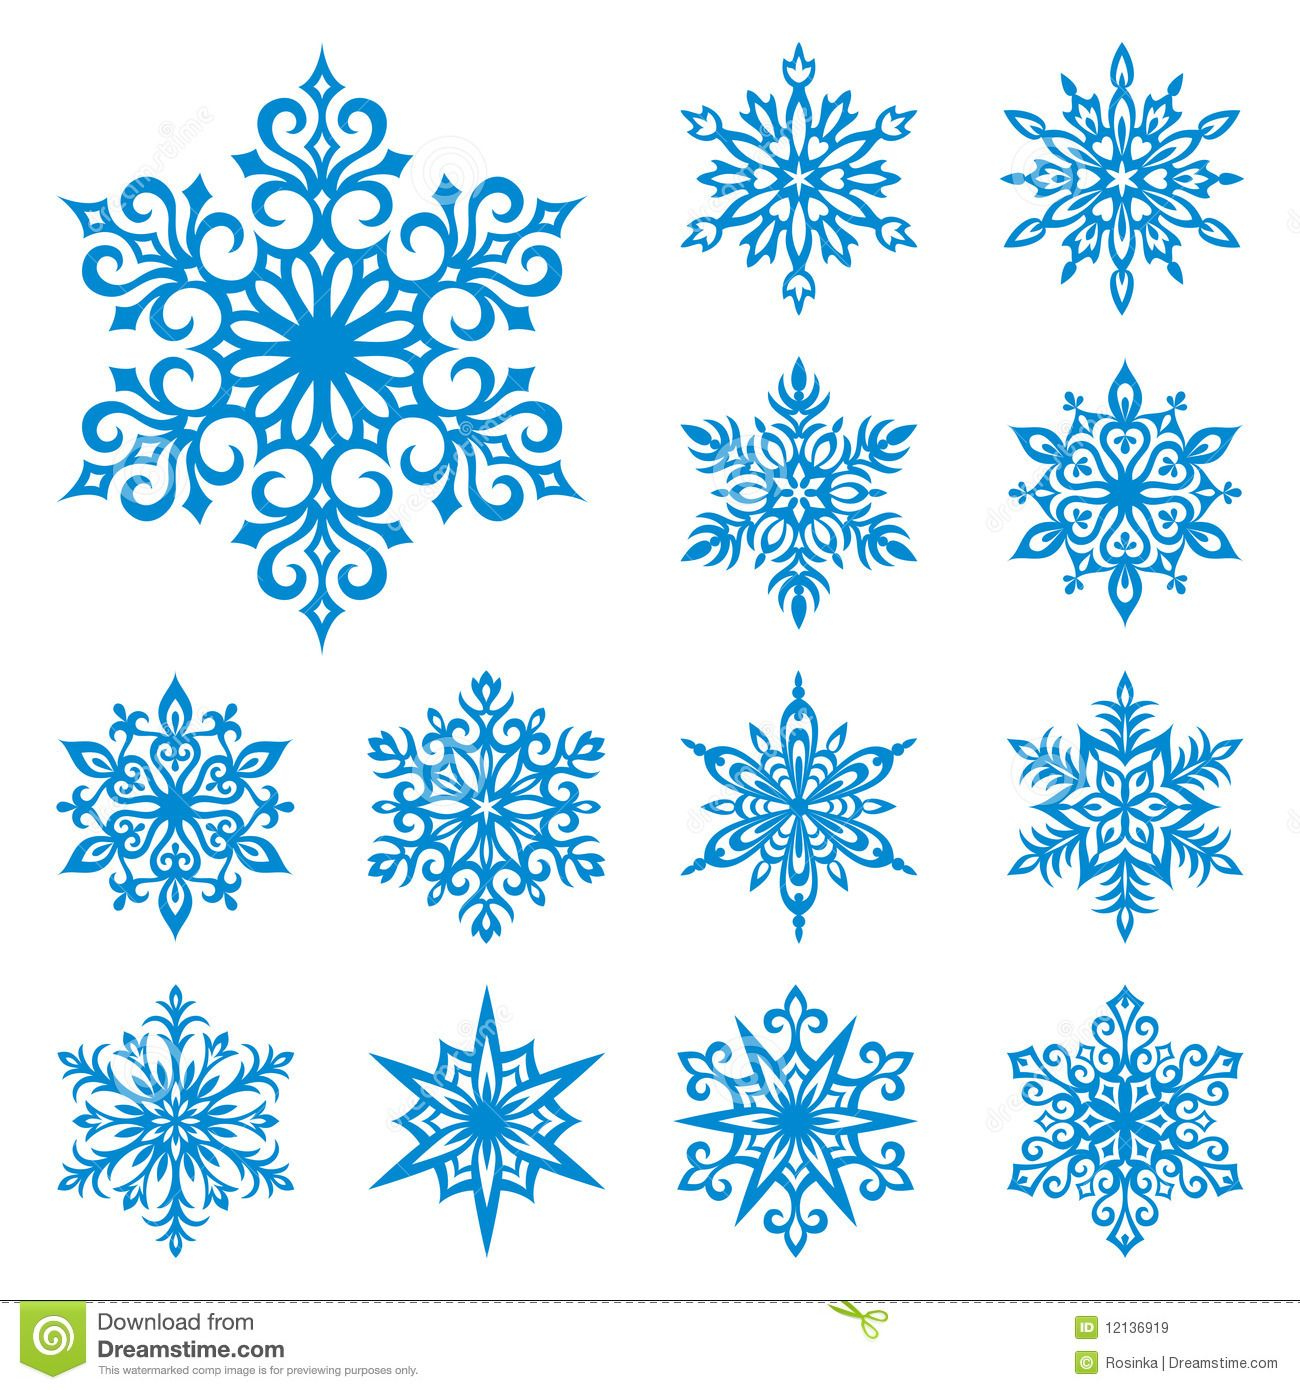 Vector Snowflakes Set Download From Over 38 Million High